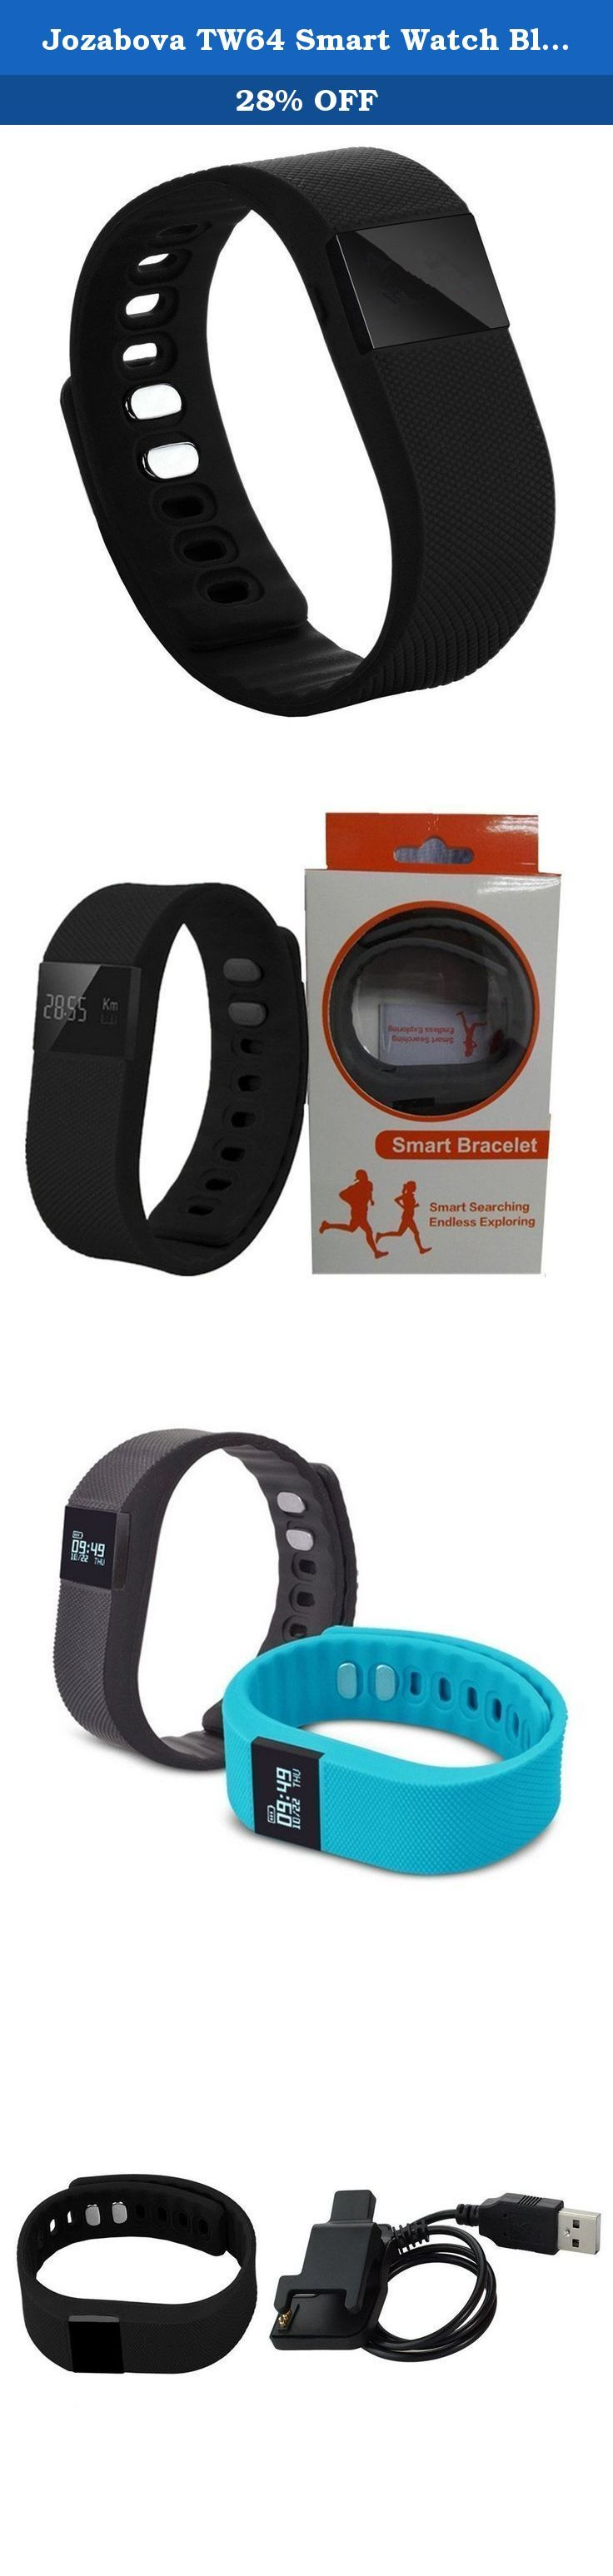 Jozabova TW64 Smart Watch Bluetooth Watch Bracelet Smart band Calorie Counter Wireless Pedometer Sport Activity Tracker For iPhone Samsung Android IOS Phone (Black). Standby time: 15 days. Your healthy monitor: Help you to keep a good habit,health and happiness follow you. Love life walking from now on: TW64 will record your step,distance and calorie,which can help you to set the target. Monitor your sleep:TW64 is able to detect how long you sleep,through its health software,count up your...